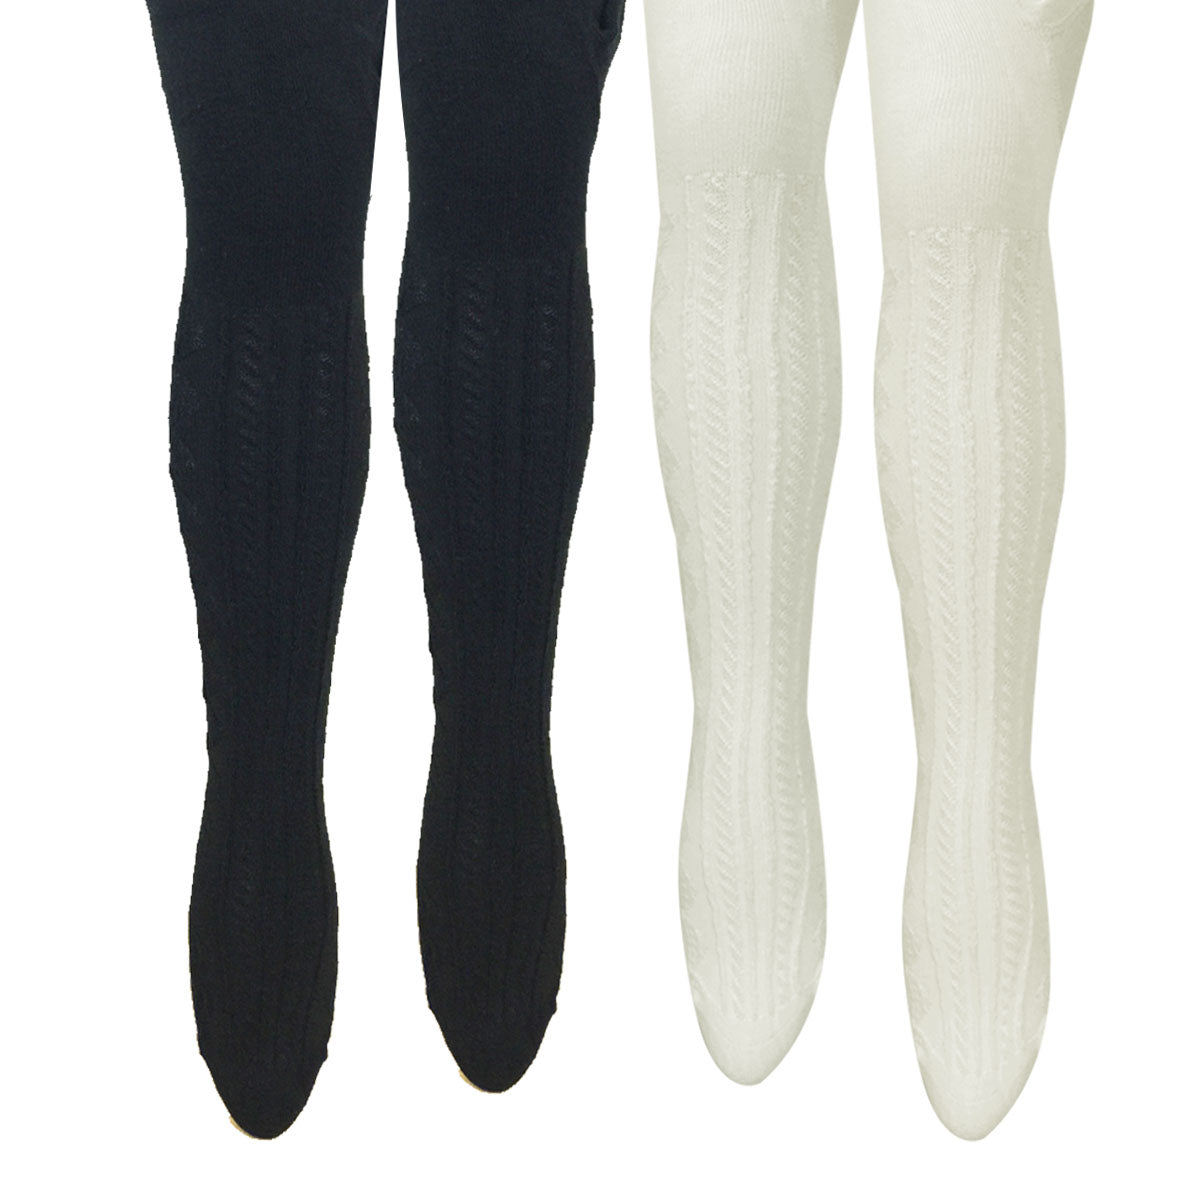 Wrapables Warm Cable Knit Tights for Toddler Girls (Set of 2)